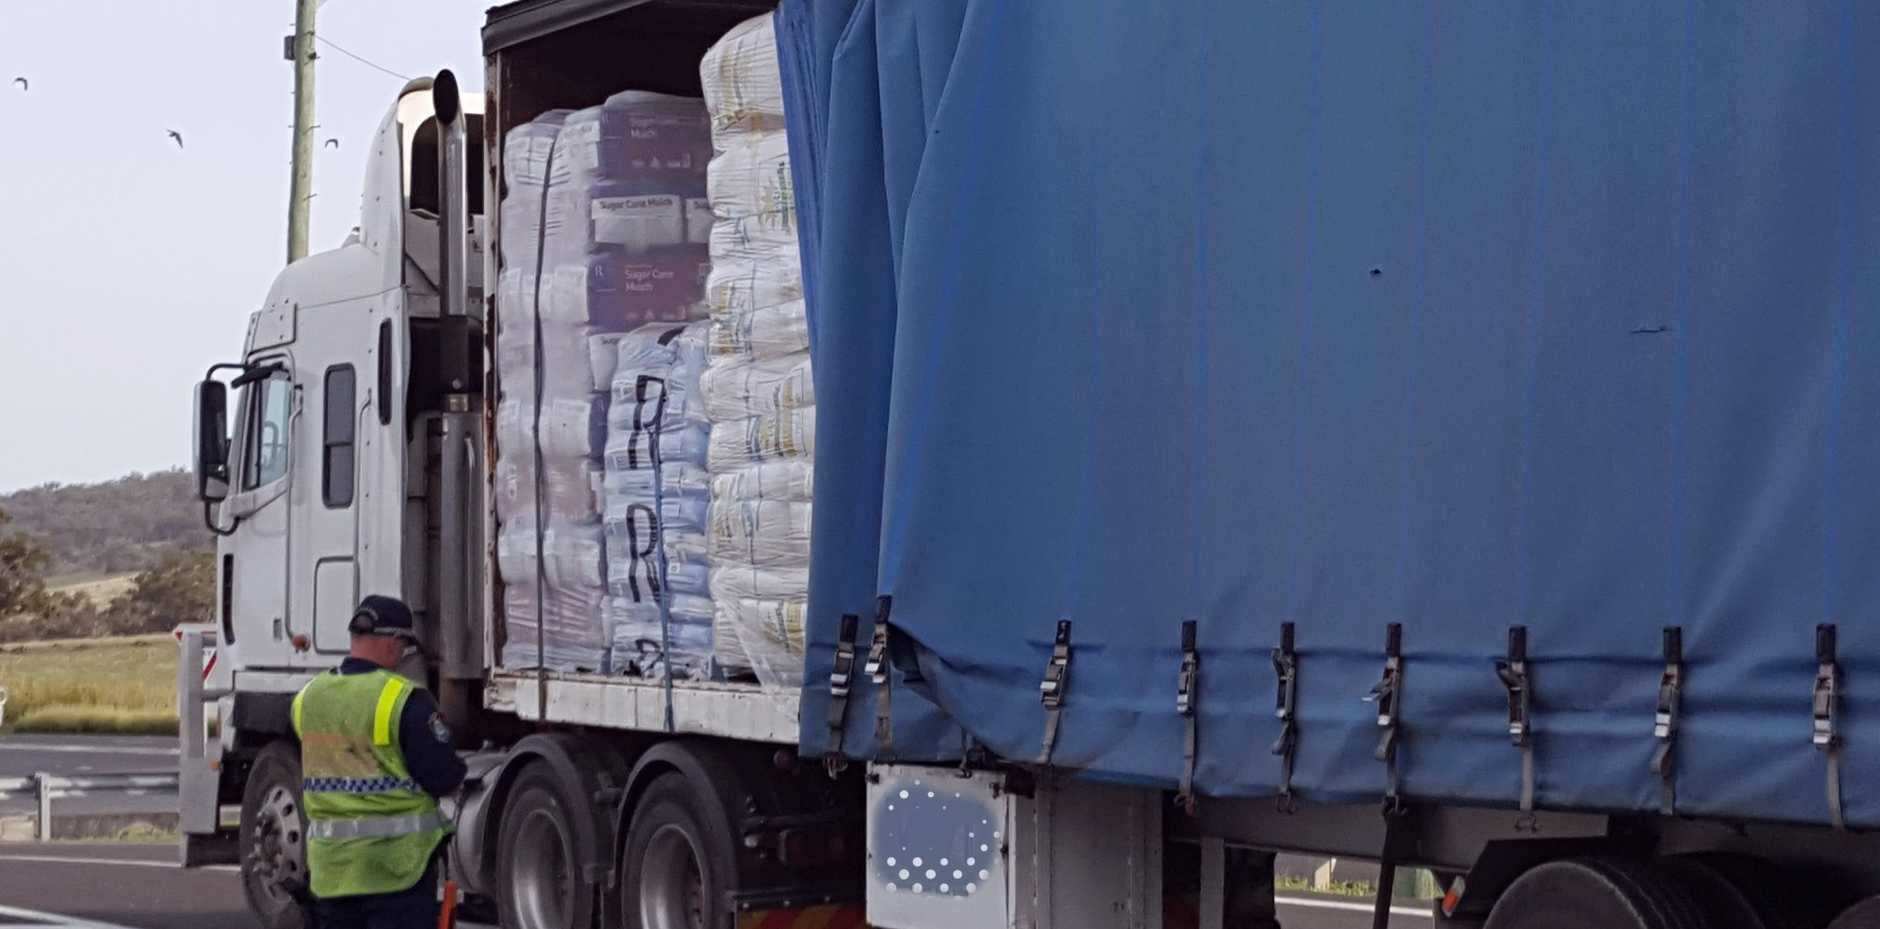 Almost 700 trucks were inspected in the first major blitz of 2020 in New South Wales. PHOTO: Traffic and Highway Patrol Command NSW Police Force